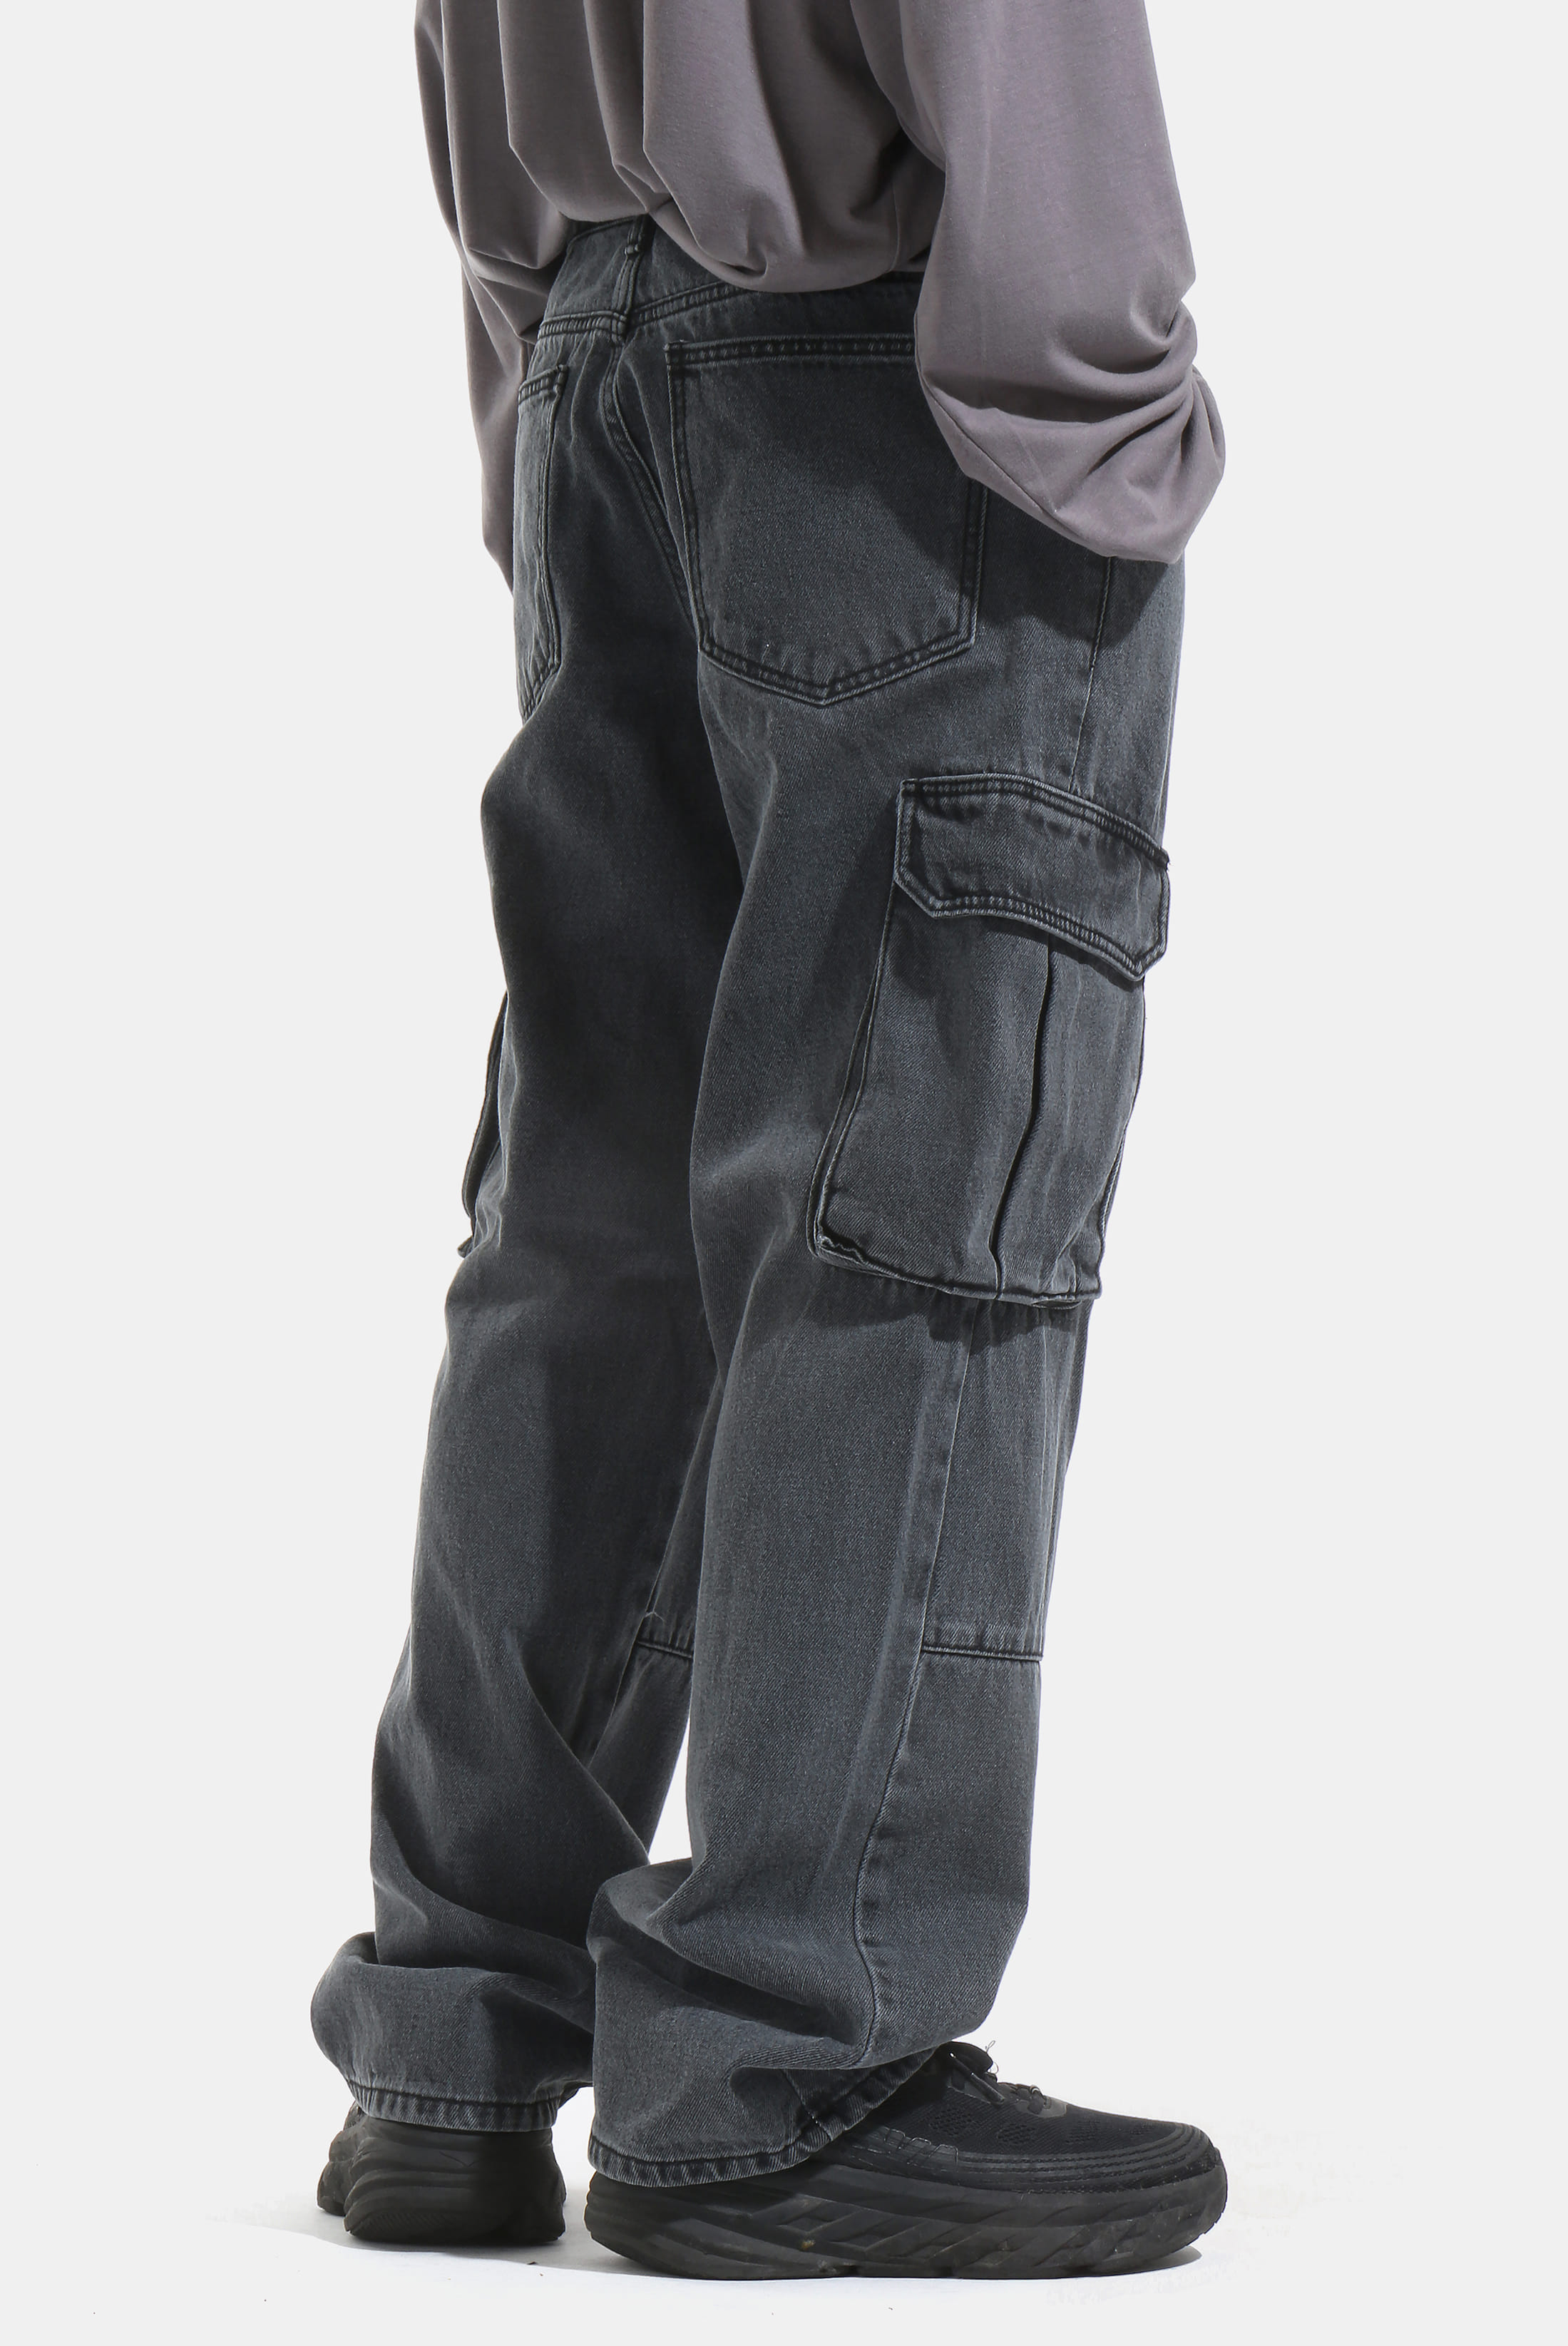 Dark_Black Cargo Denim_Pants